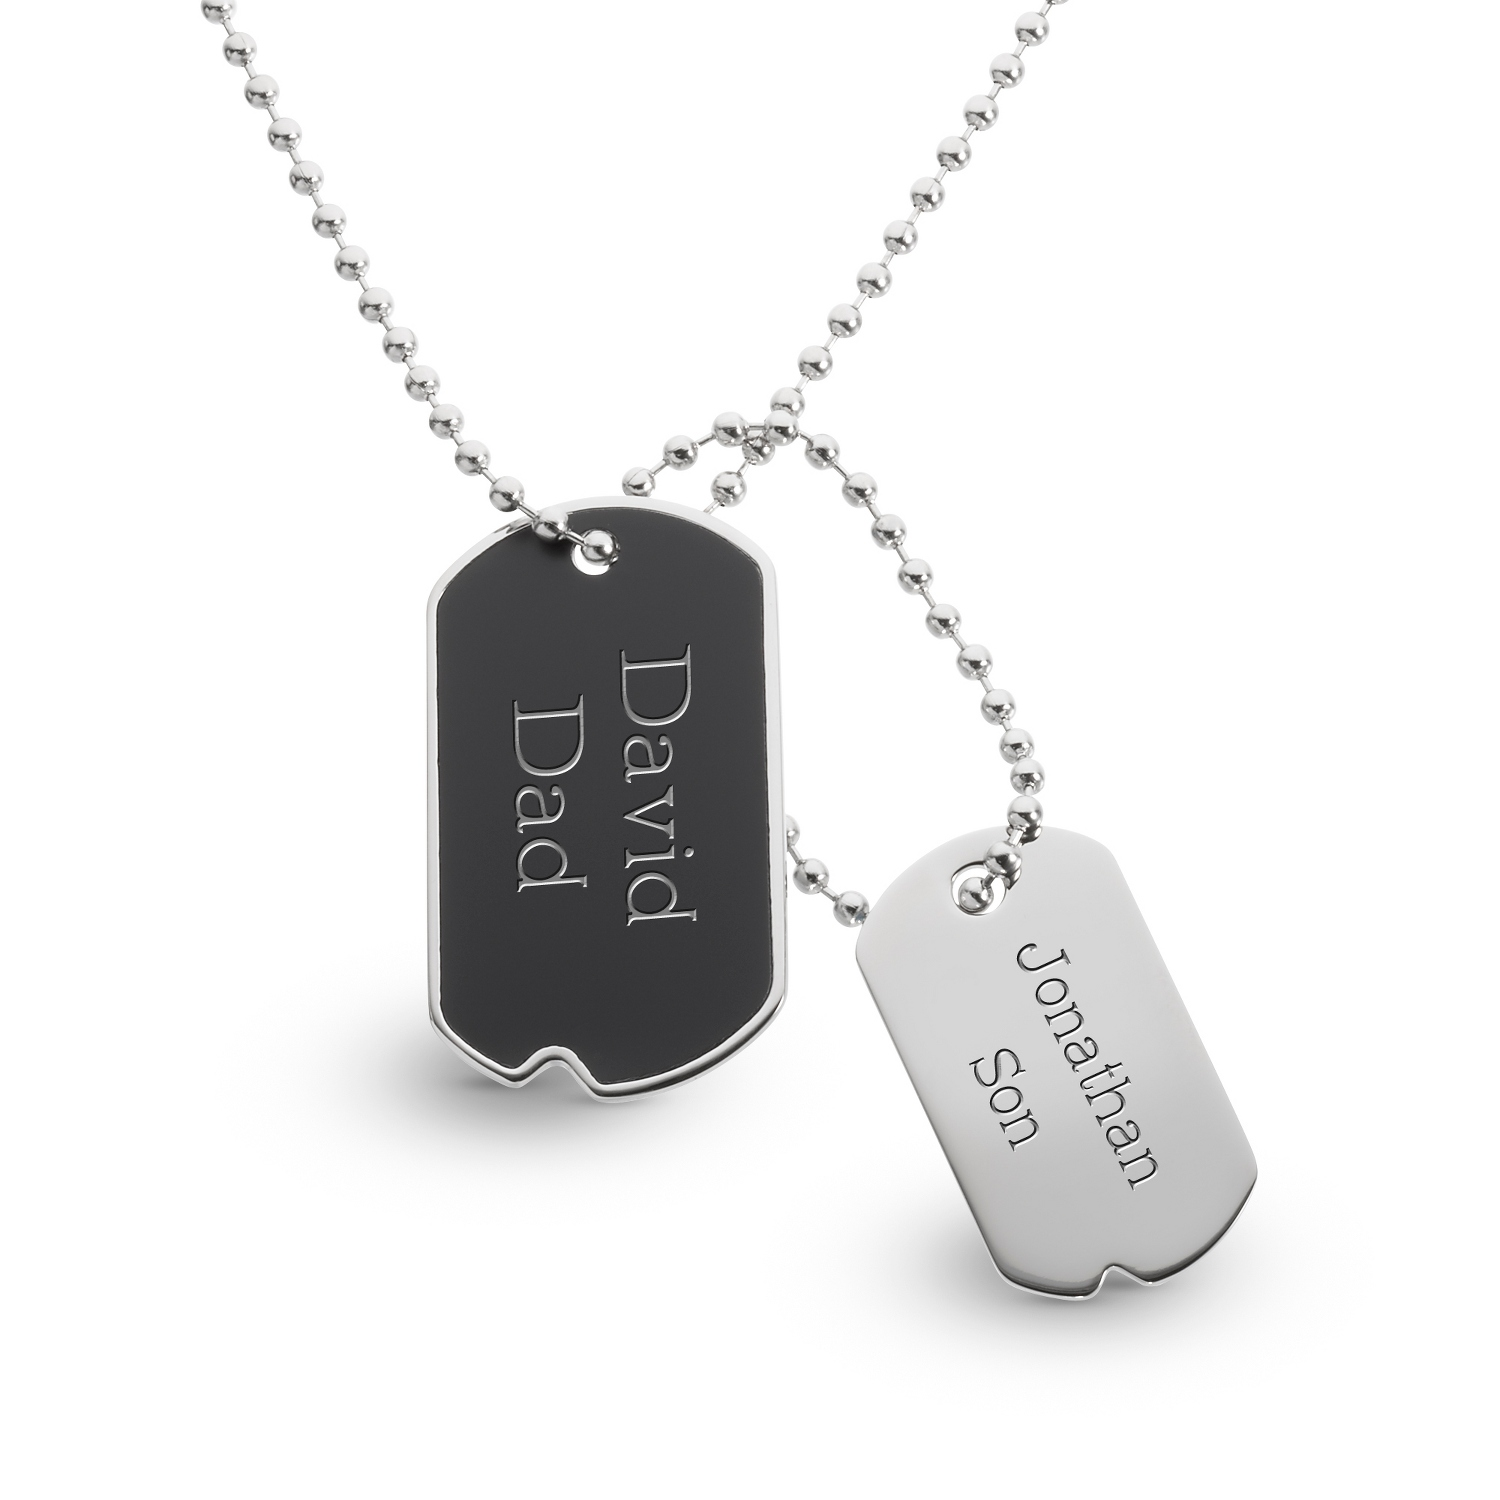 tags chain silver cross dog out dcy product prayer tag on pendant s lord sterling lockets cut